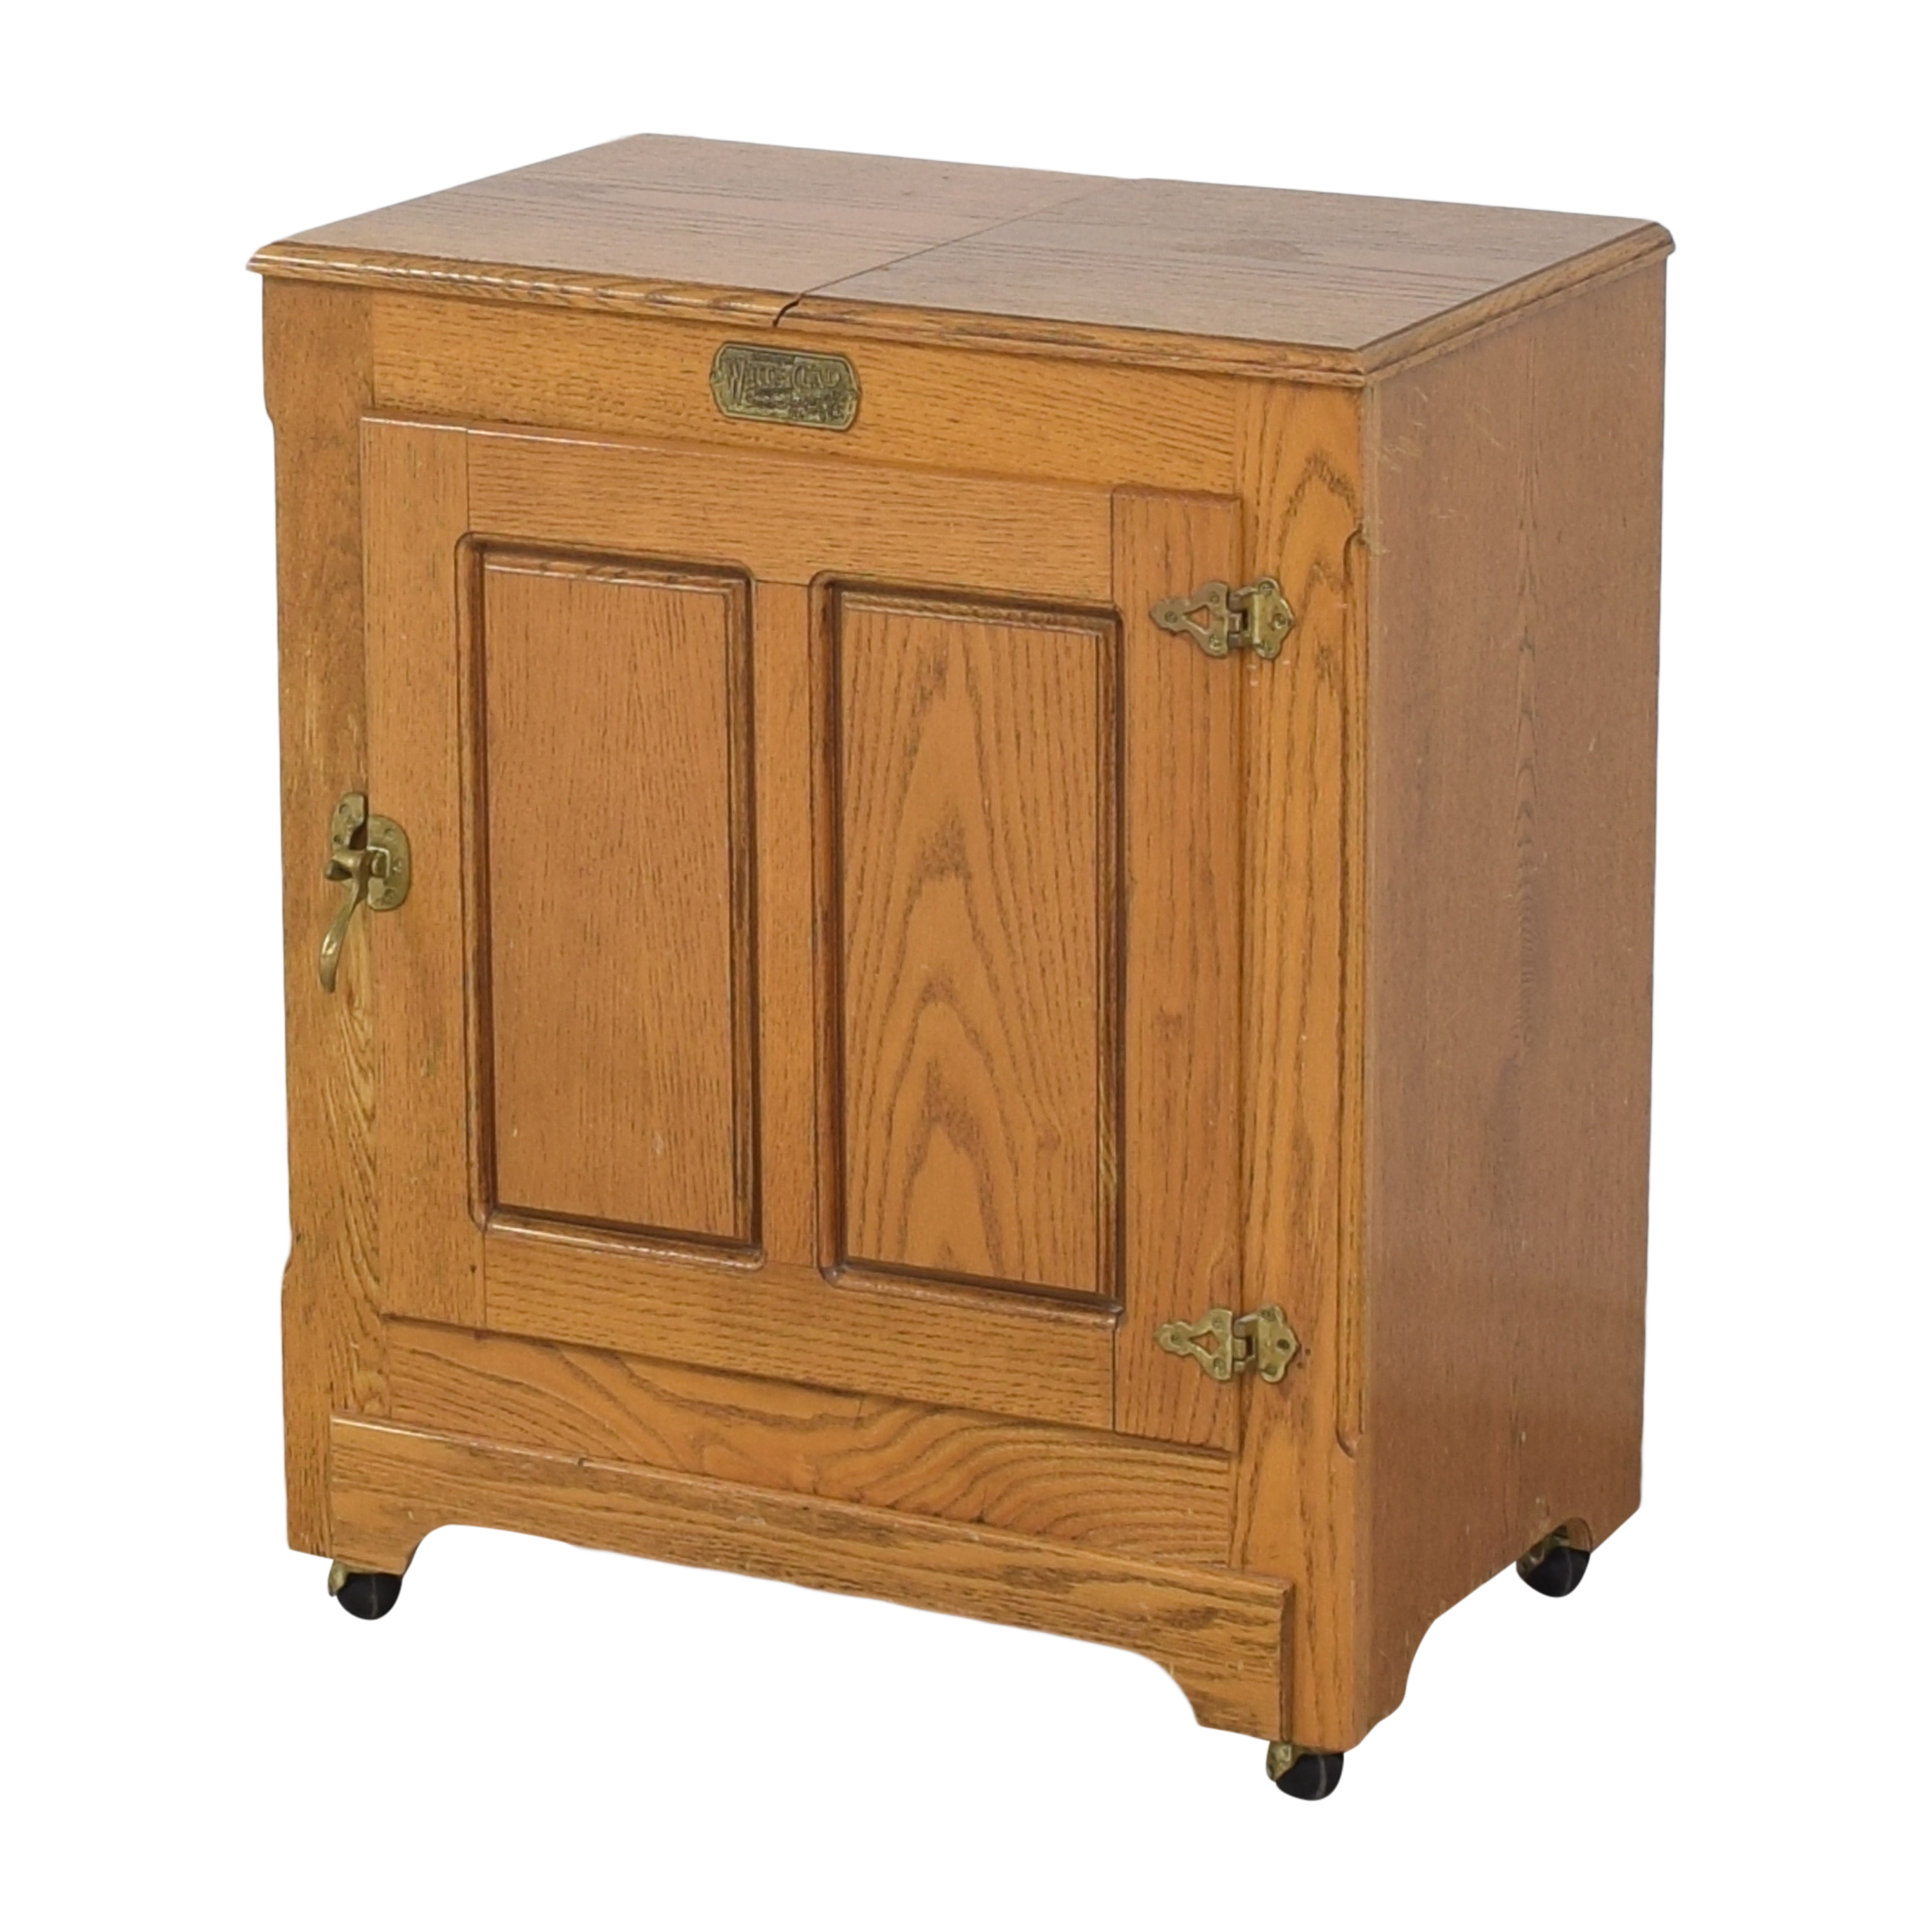 Simmons Hardware Simmons Hardware White Clad Ice Box Wine Cabinet on Casters discount